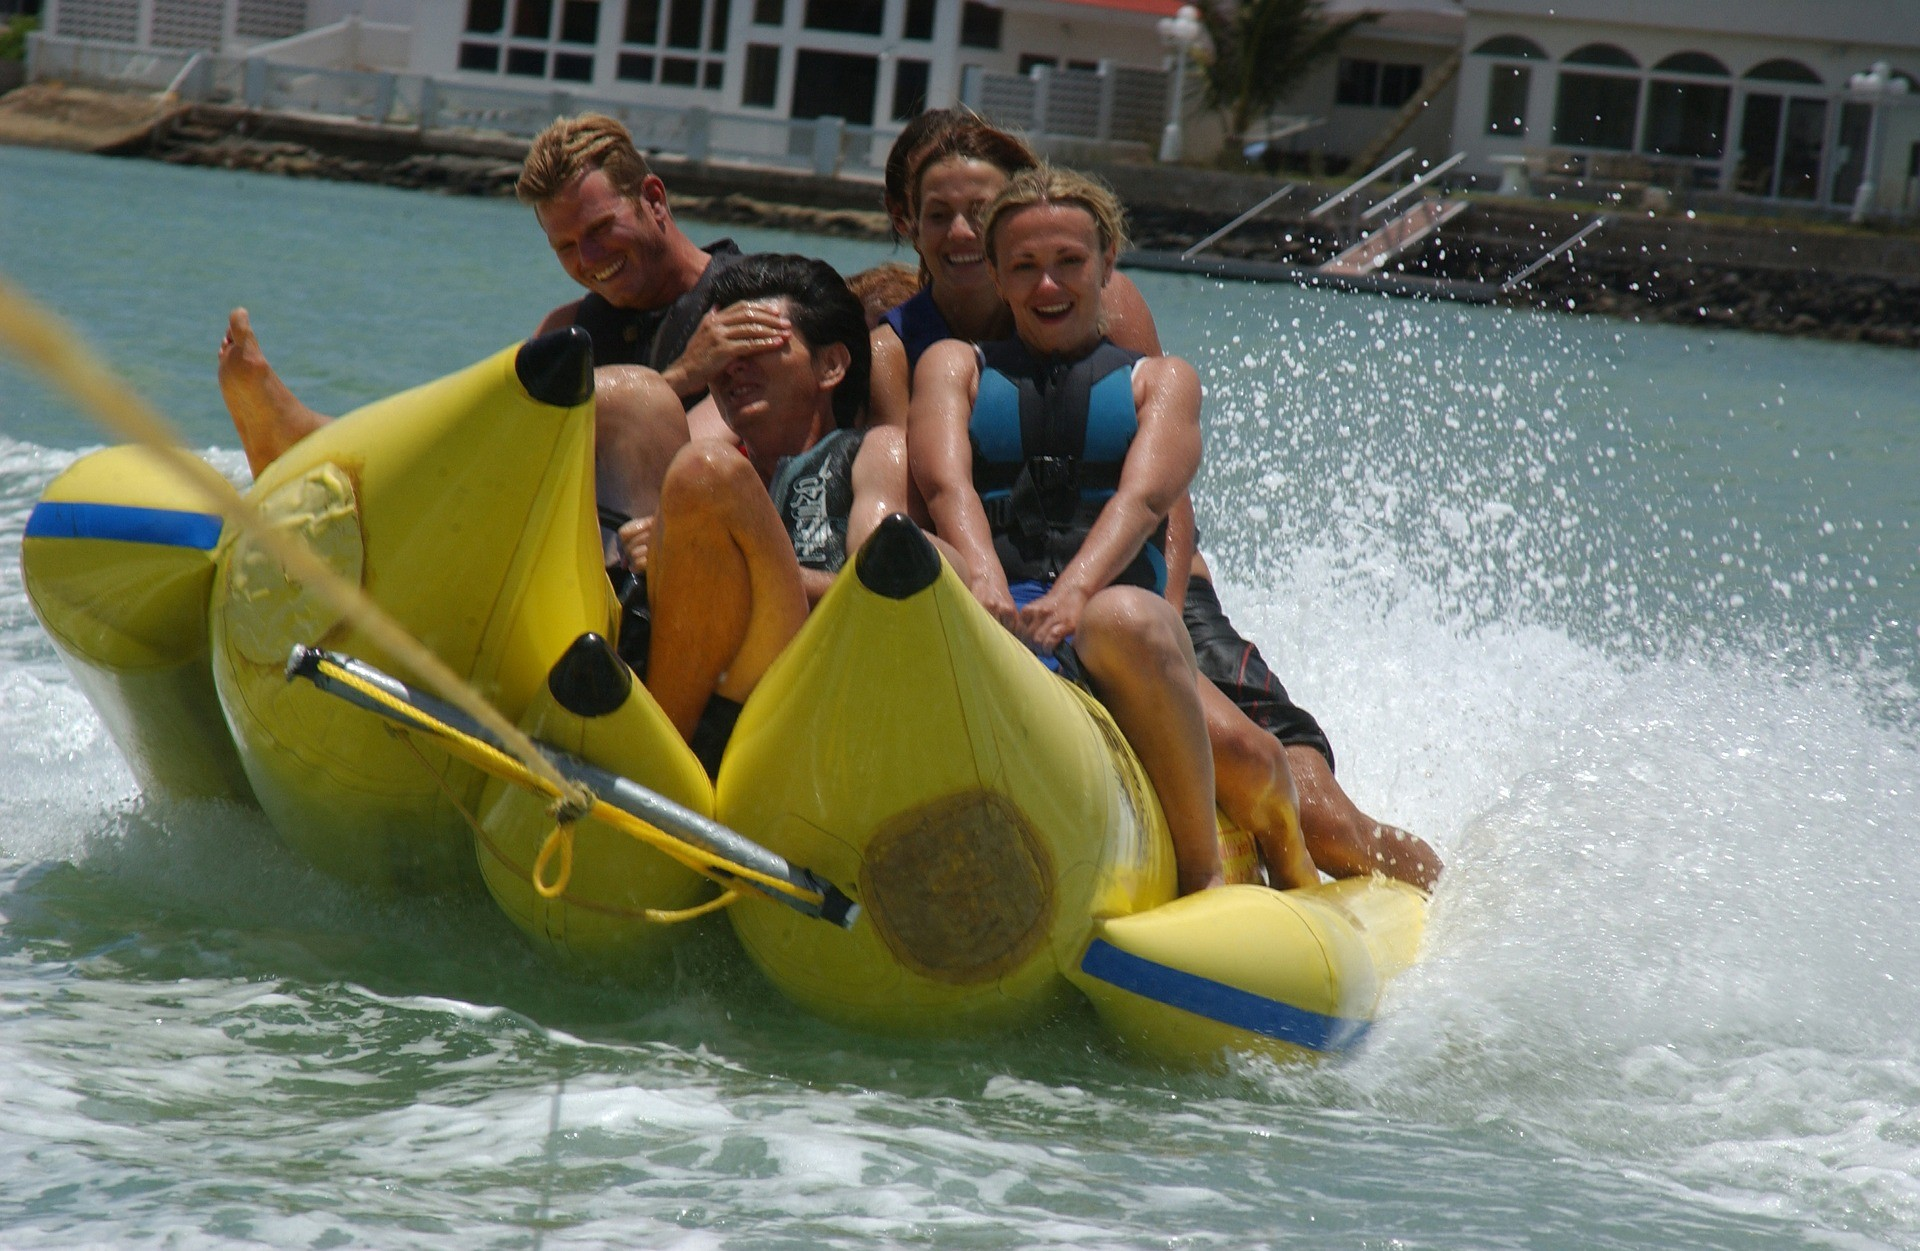 photo_banana-boat-ride.jpg